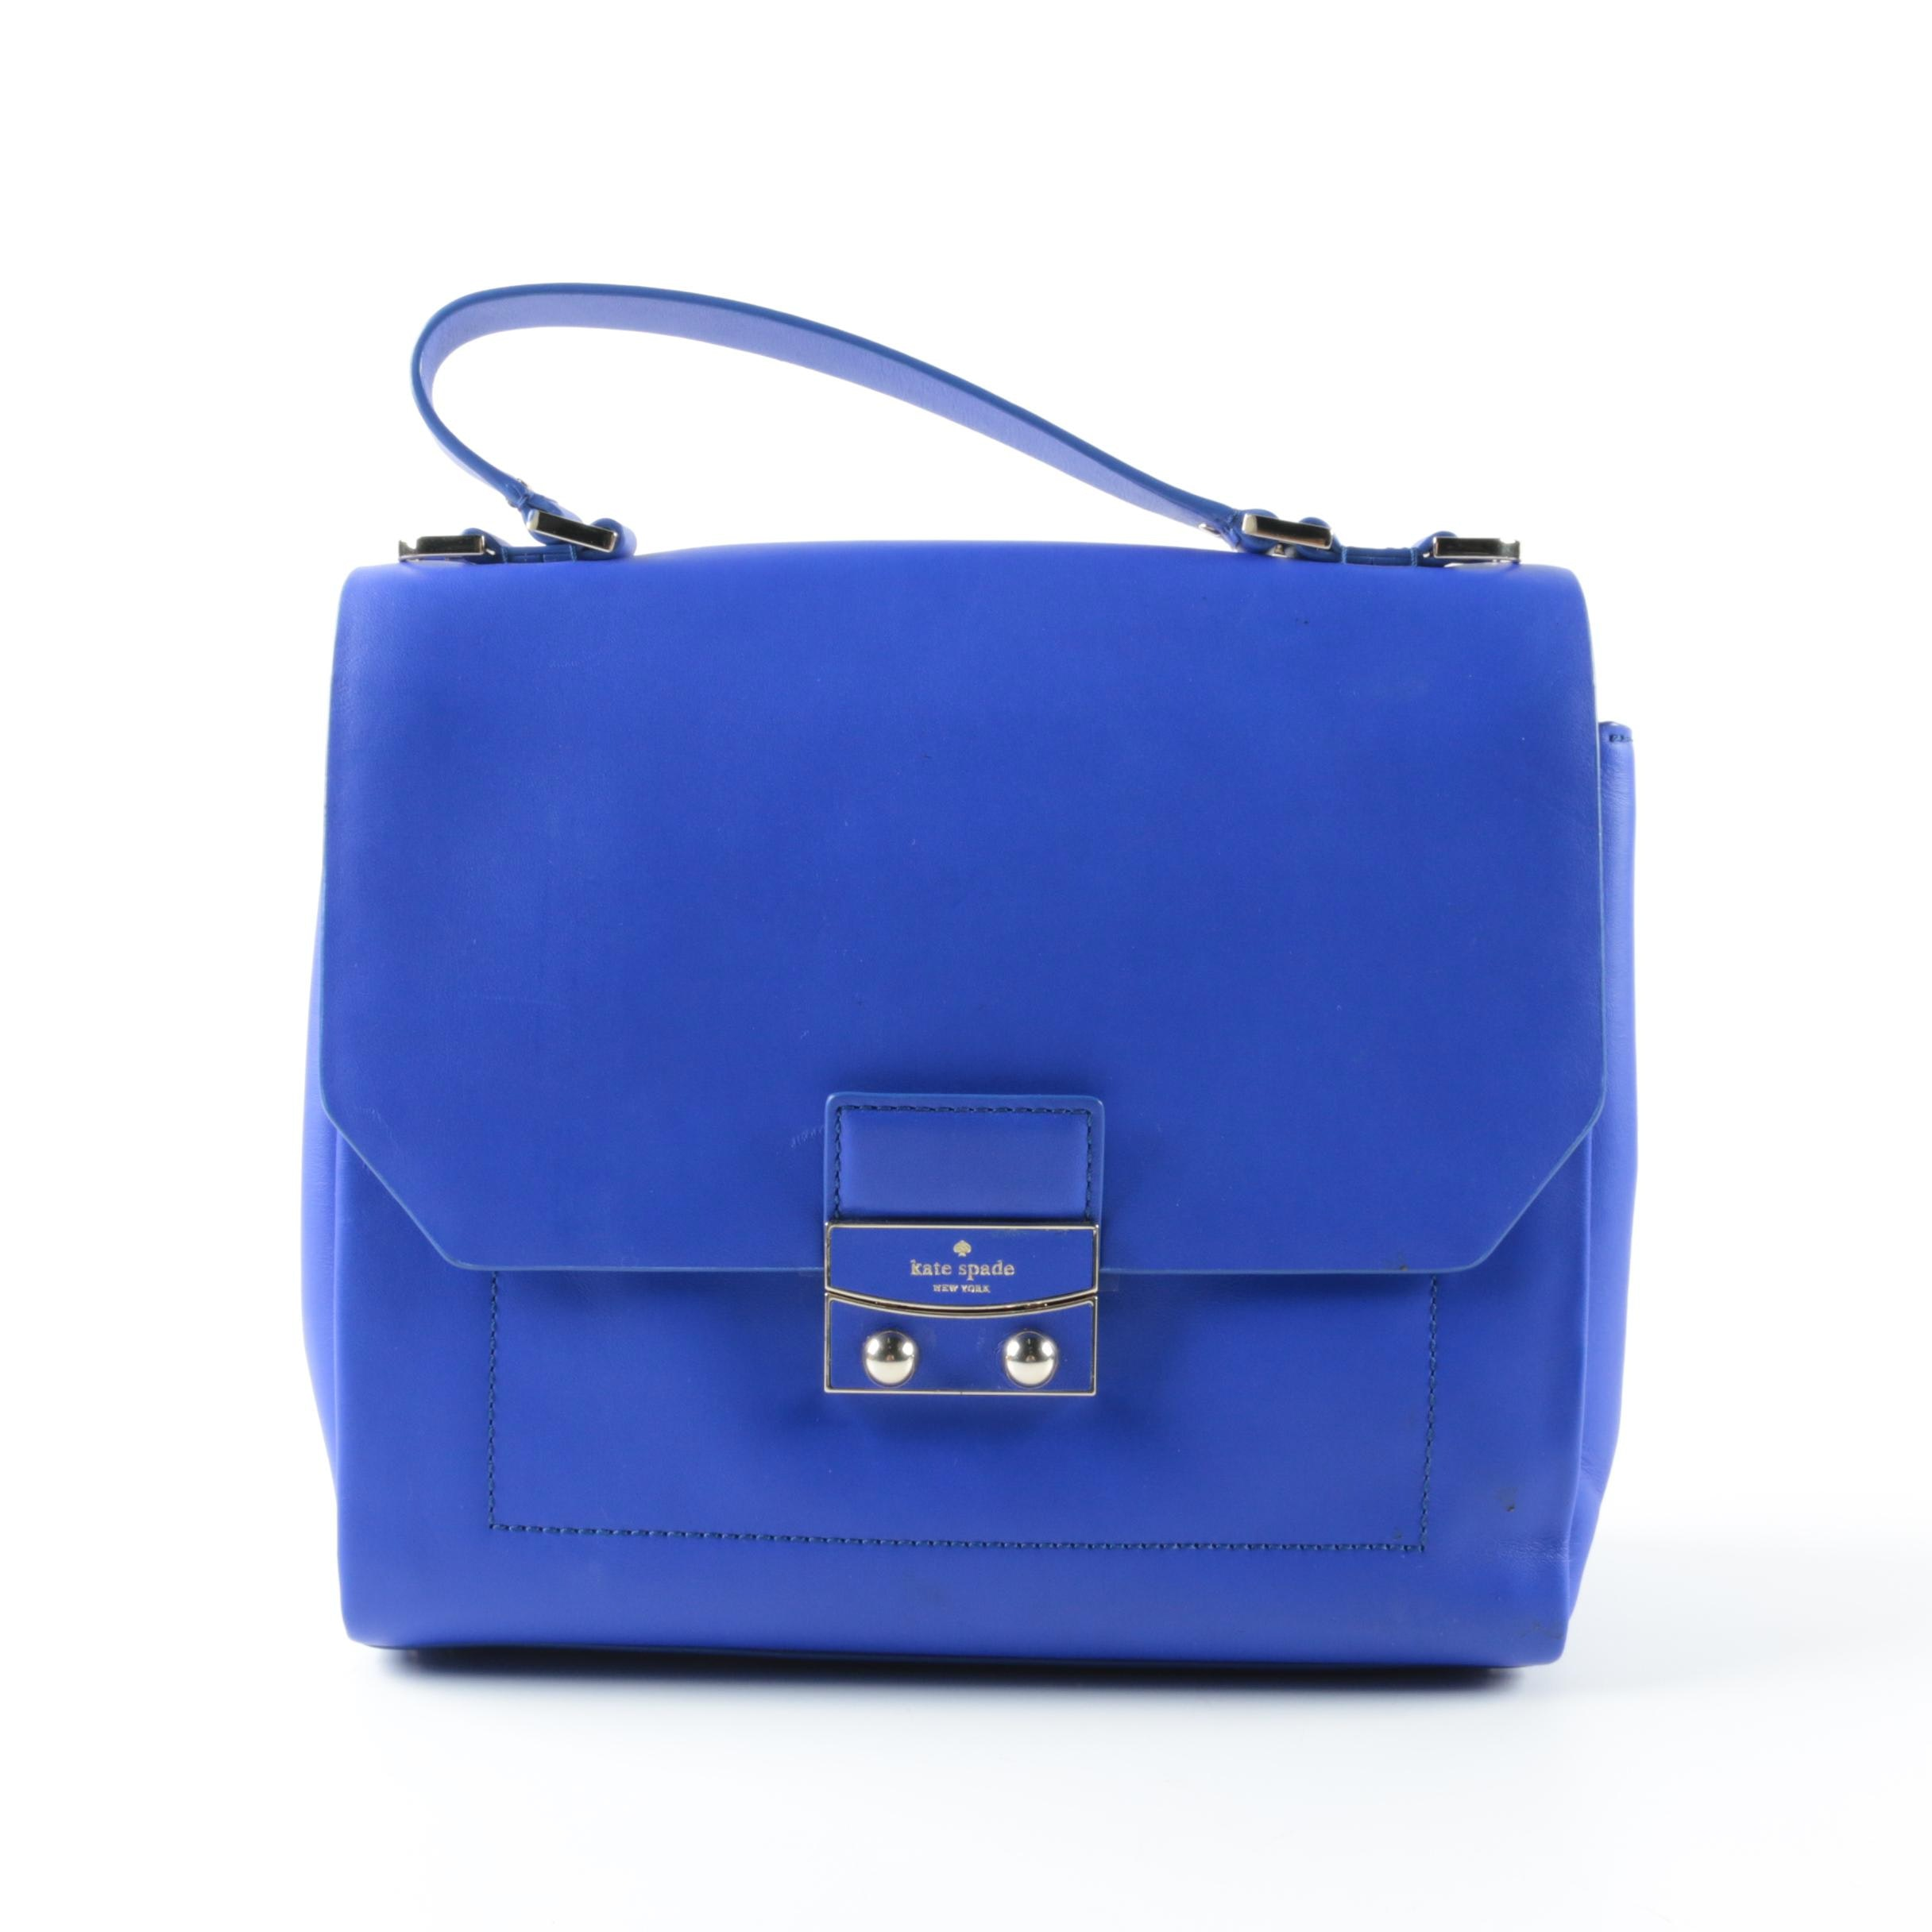 Kate Spade Electric Blue Leather Top Handle Bag